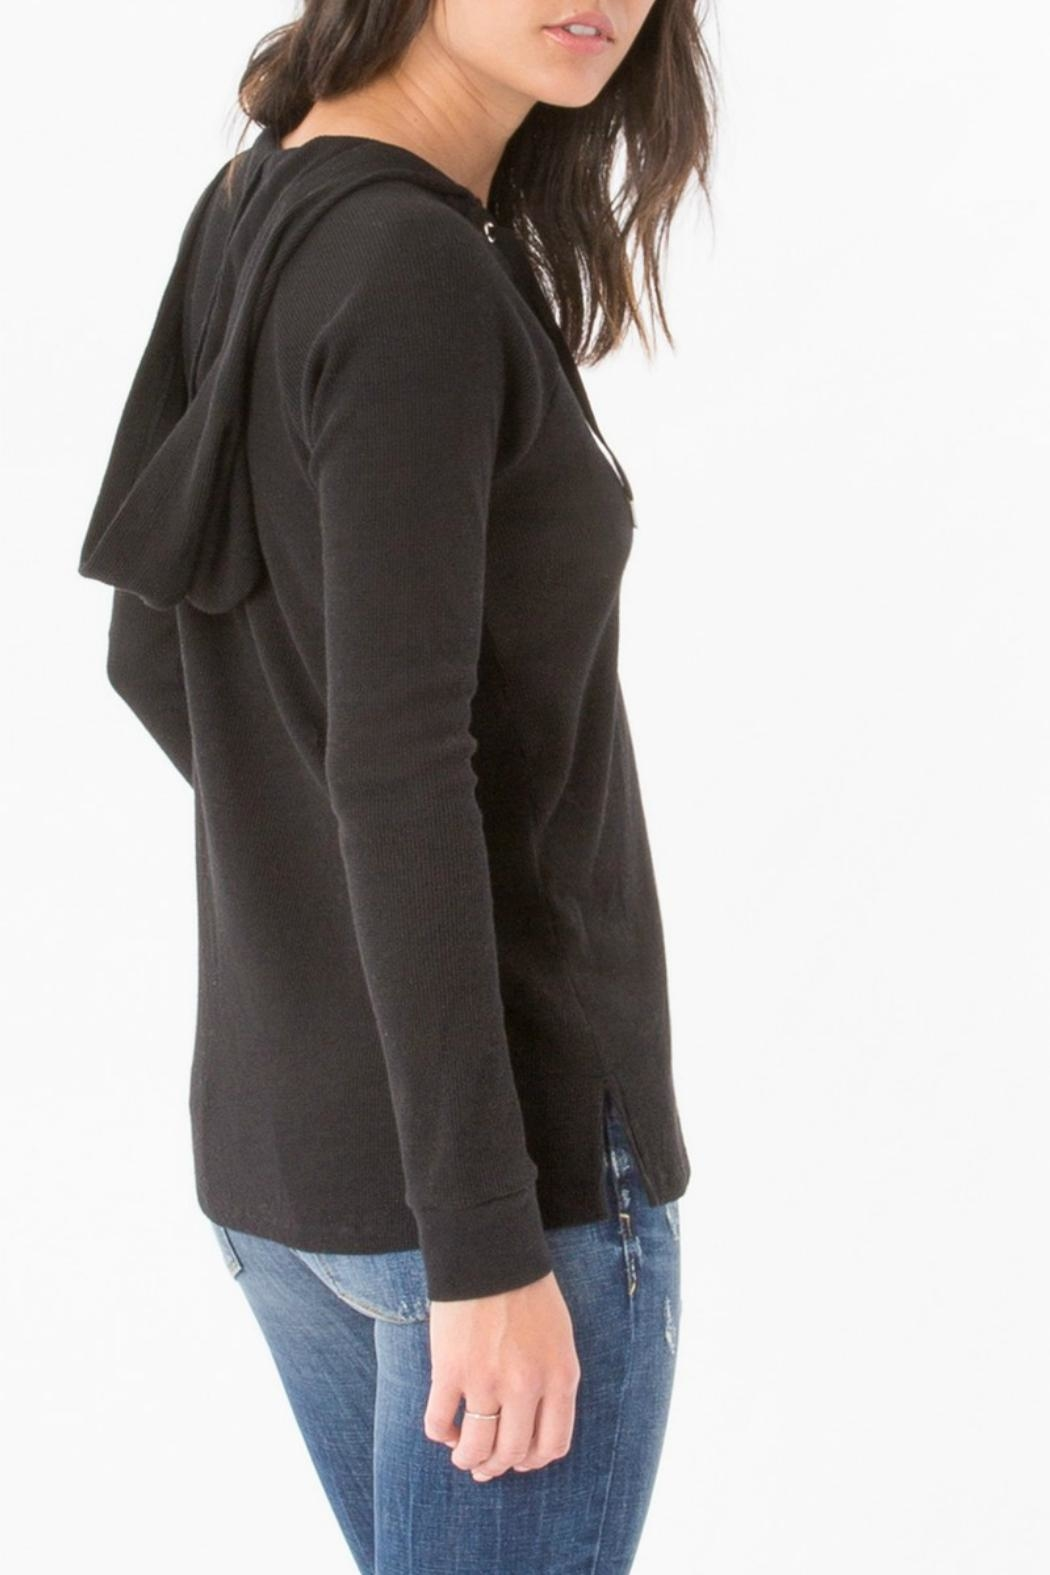 z supply Thermal Lace Up Sweater - Side Cropped Image